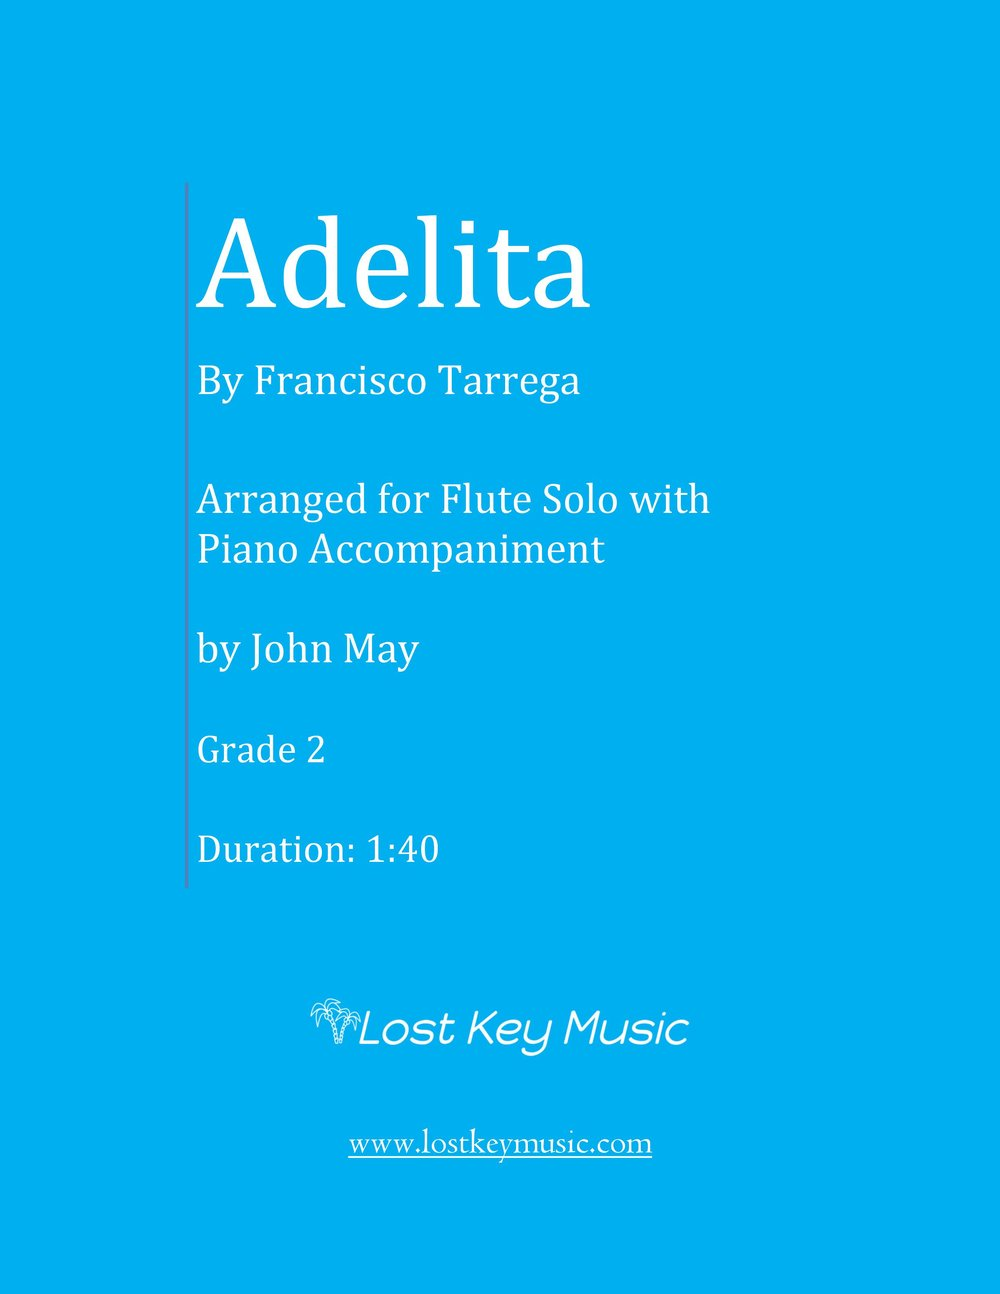 Adelita-Flute Solo with Piano Accompaniment.jpg